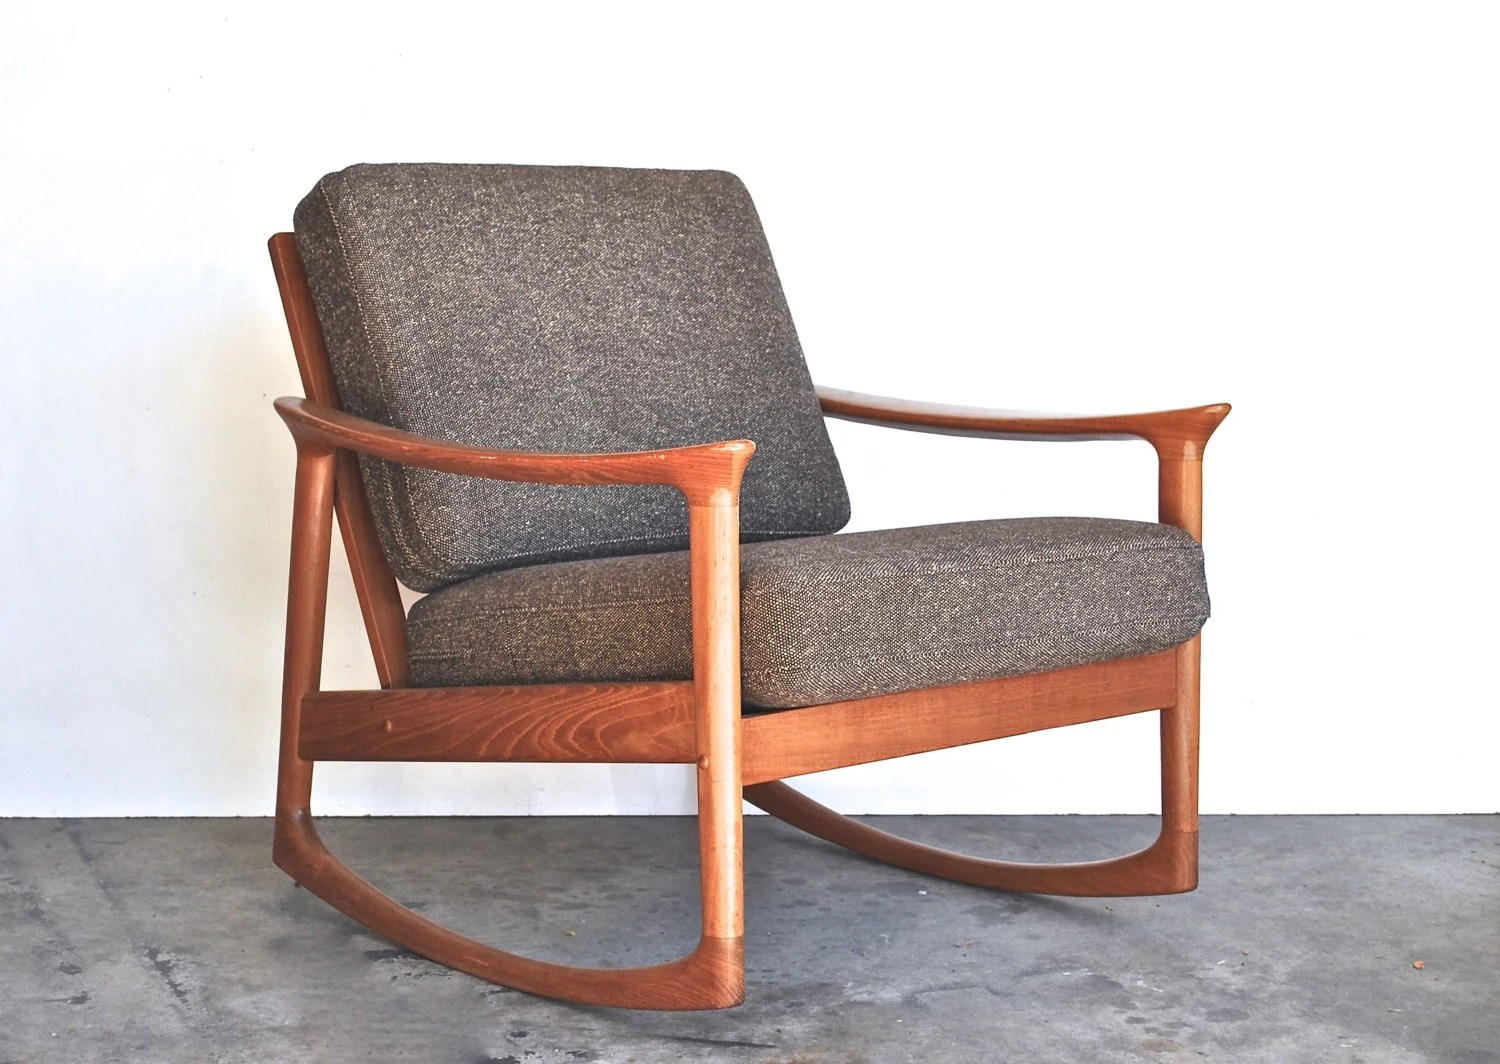 Midcentury Chairs Mid Century Modern Rocking Chair Danish Modern Vintage